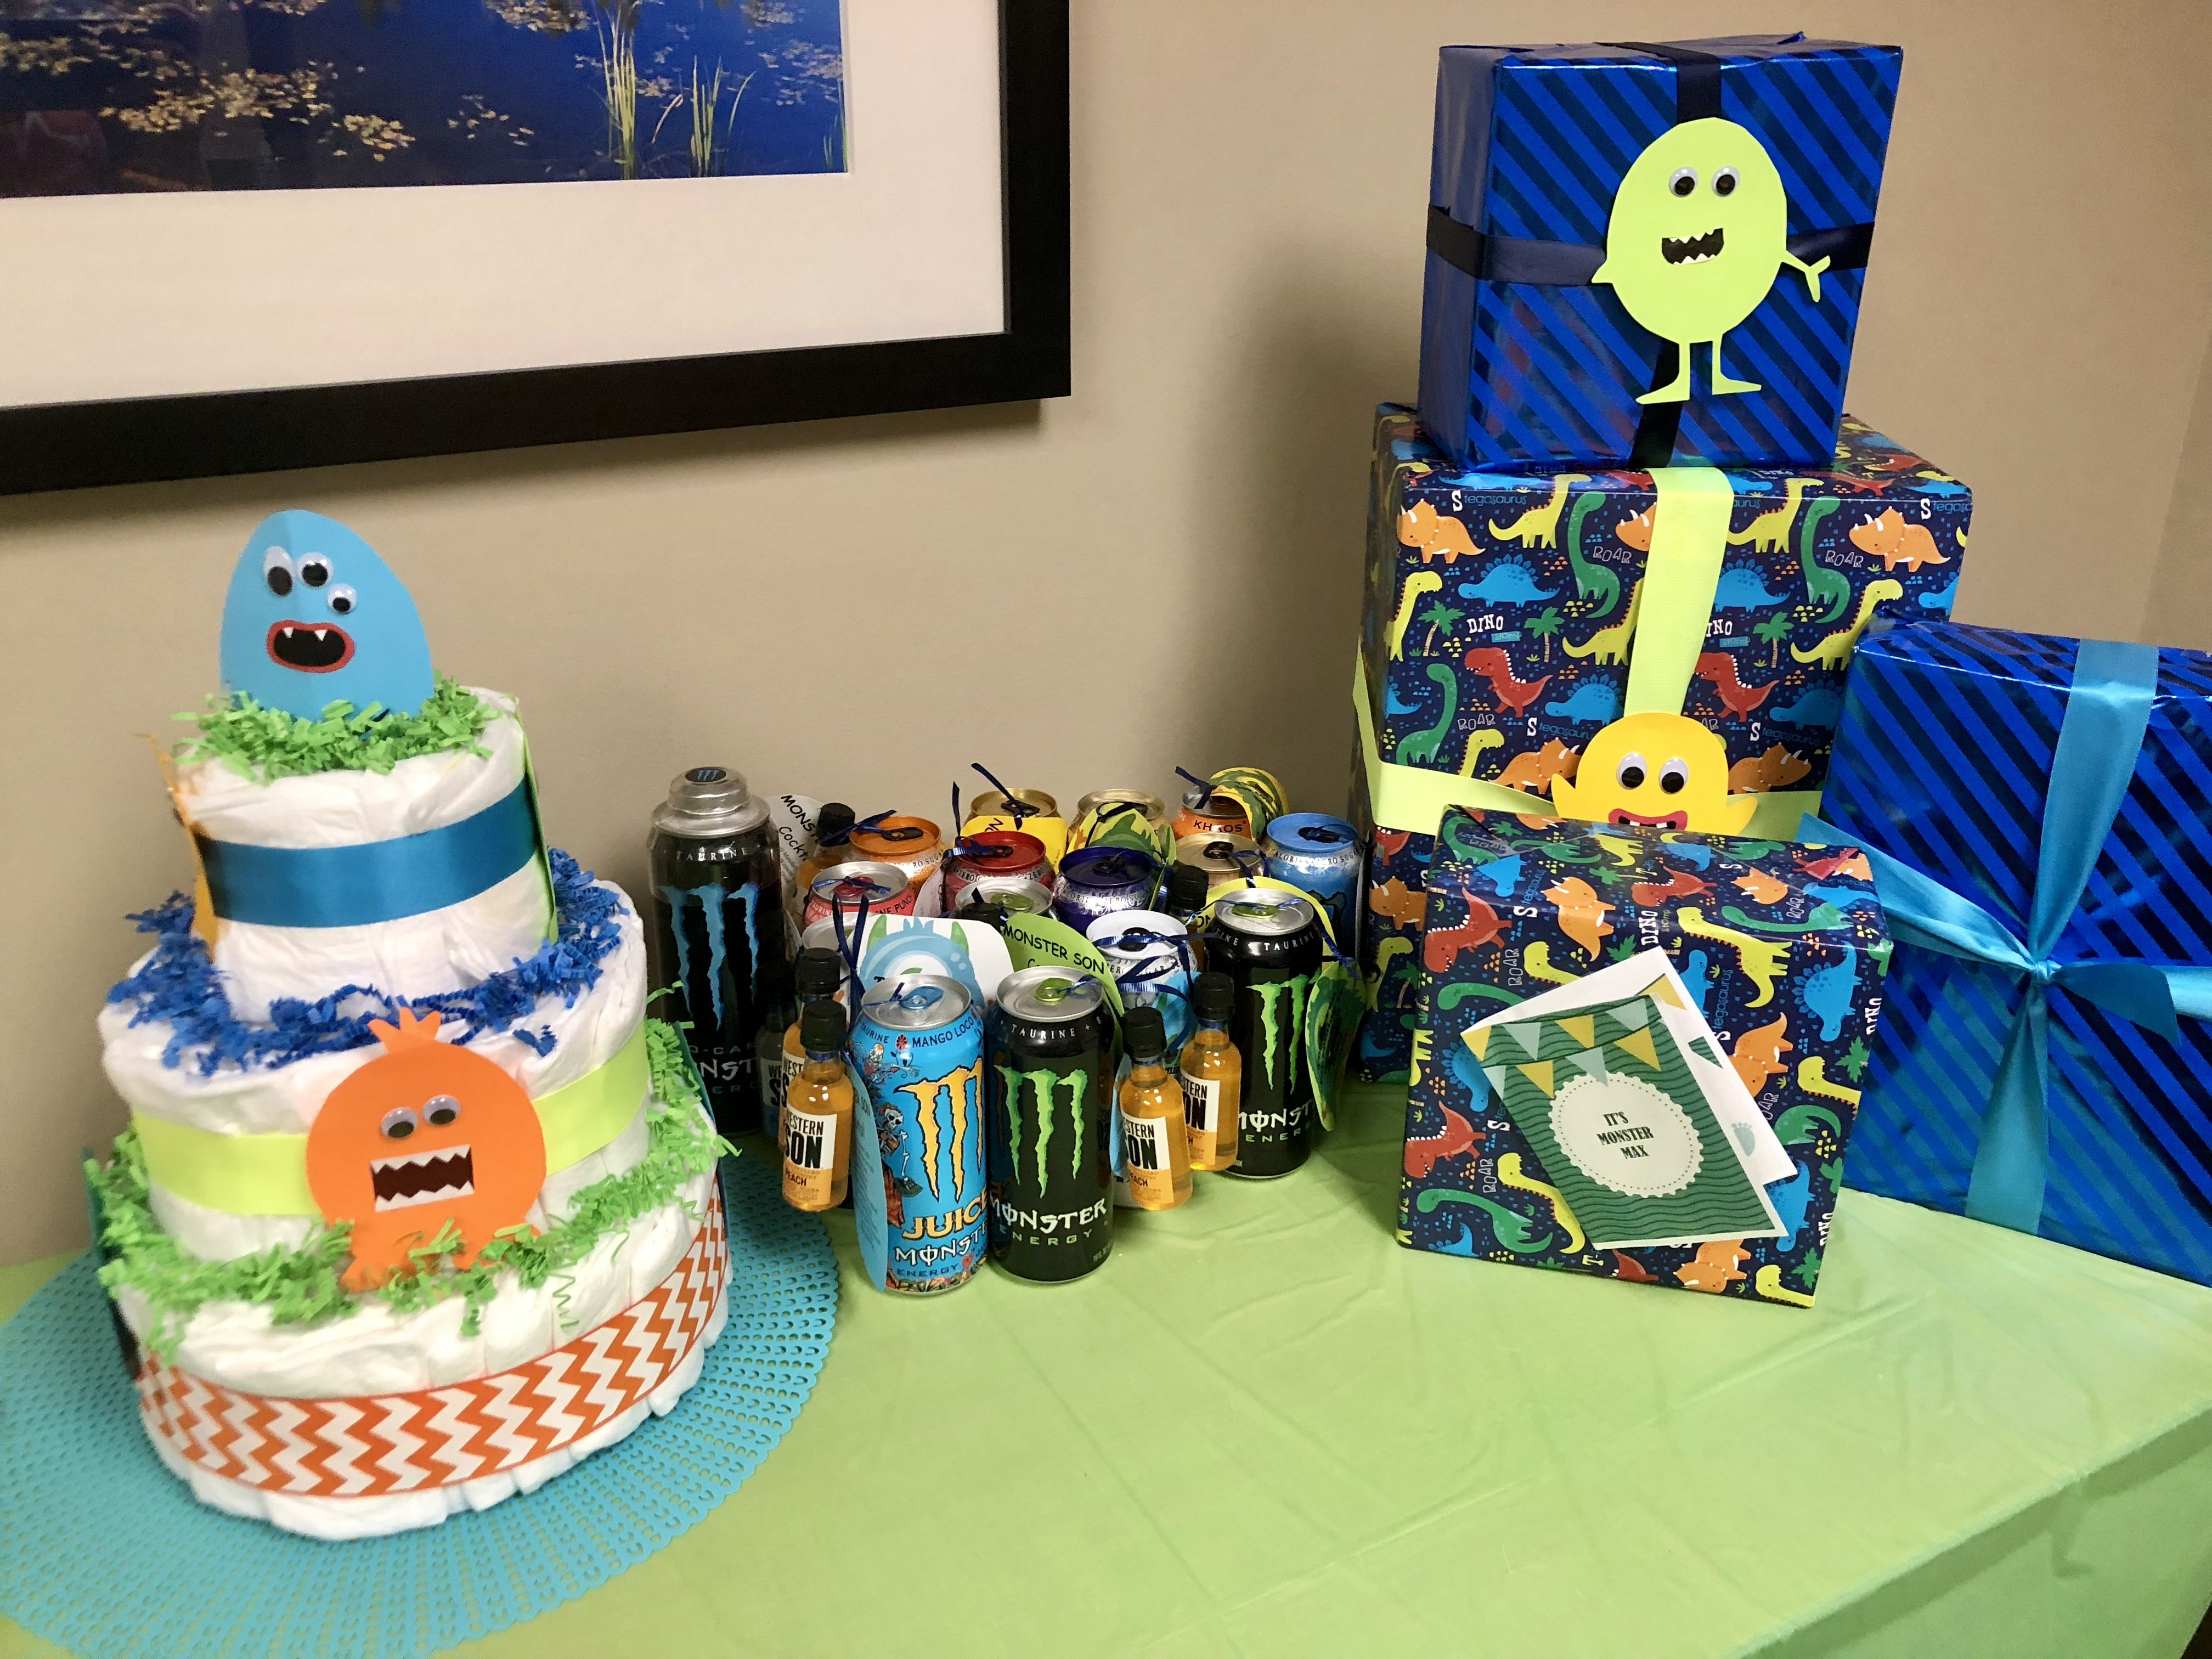 Mommys Little Monster Baby Shower Party Favors, Gifts, Cake